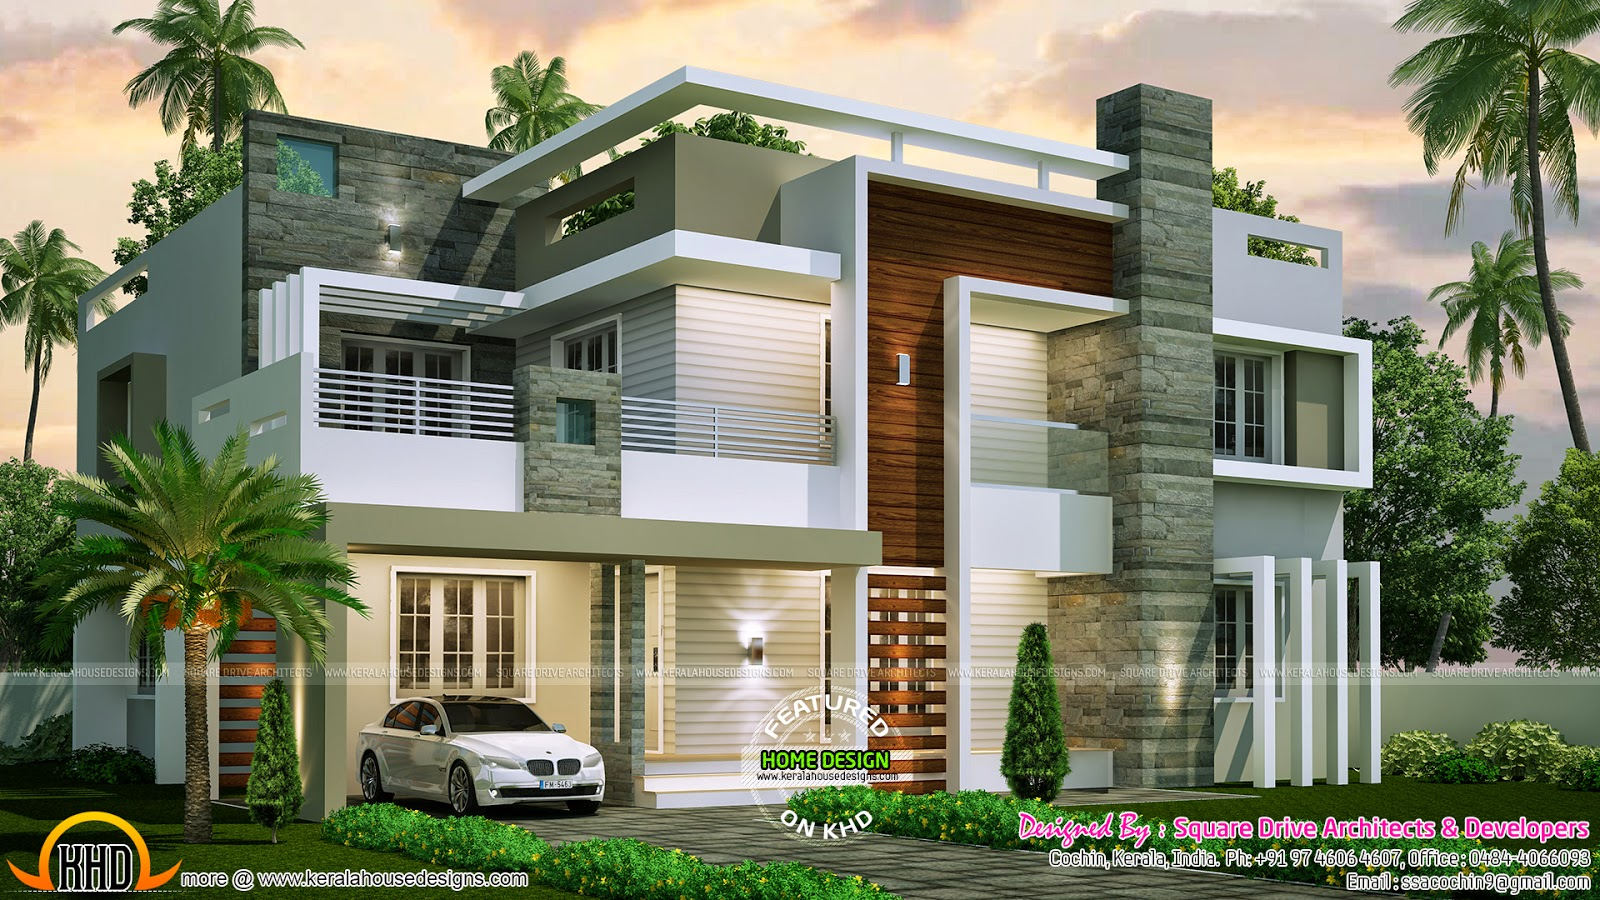 4 bedroom contemporary home design kerala home design Modern home design